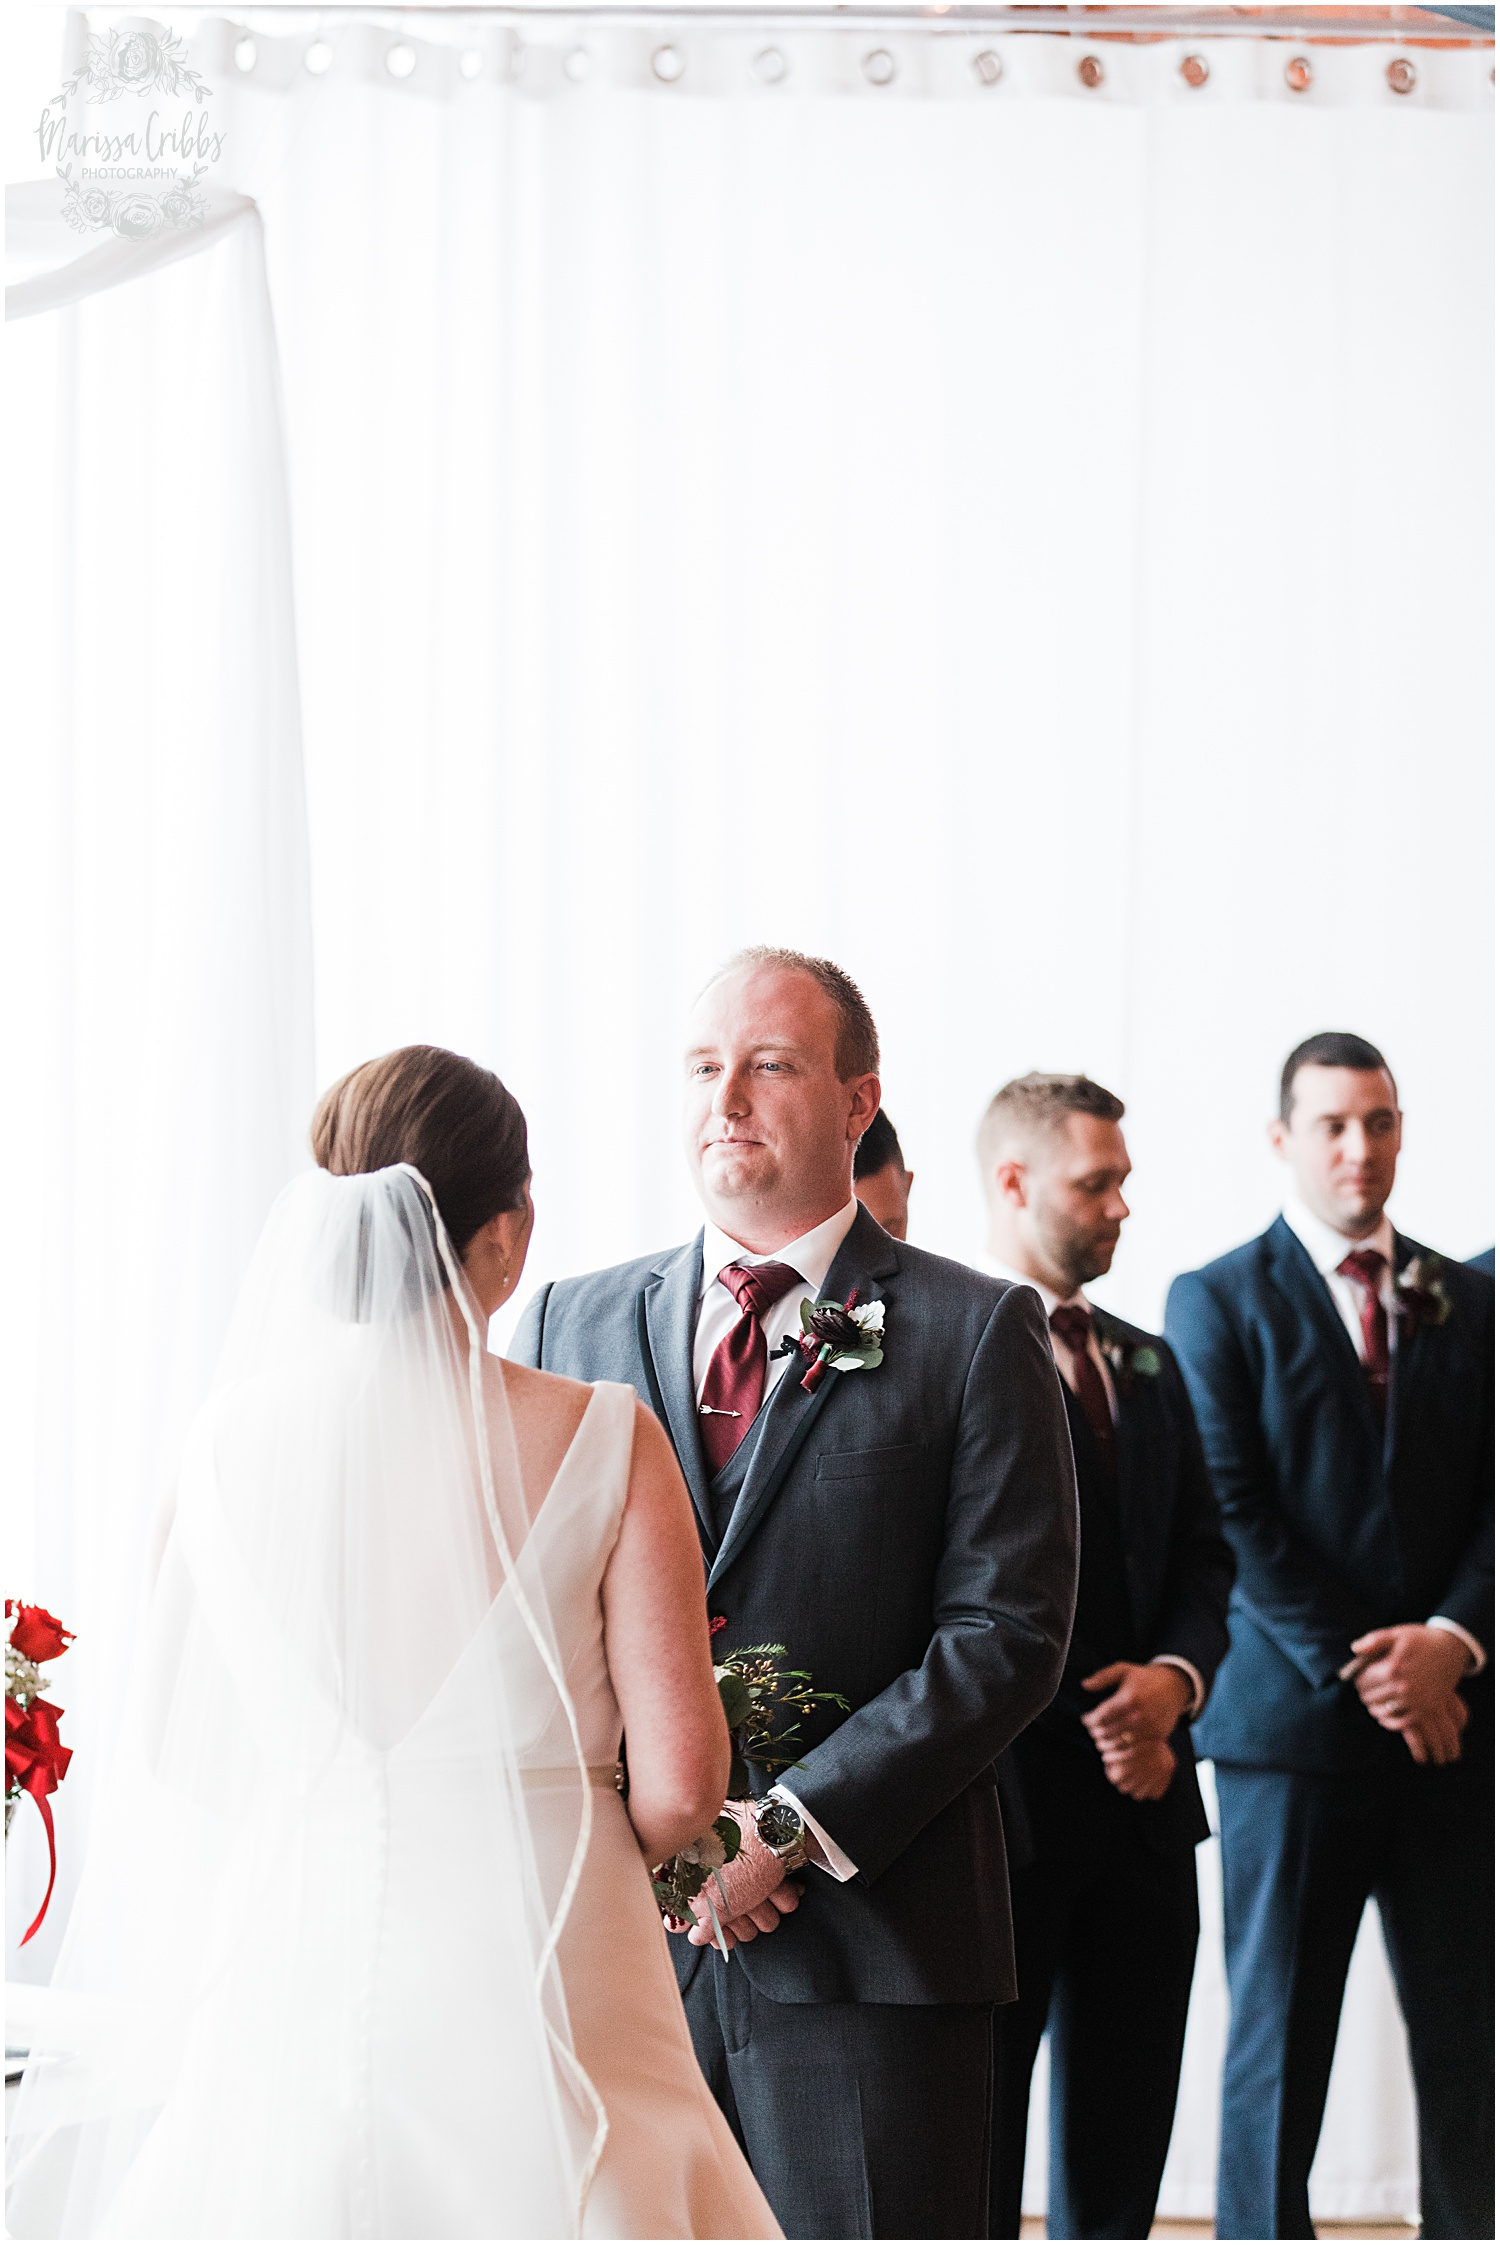 EVERLY EVENT SPACE WEDDING | KATHRYN & KEVIN | MARISSA CRIBBS PHOTOGRAPHY_7427.jpg